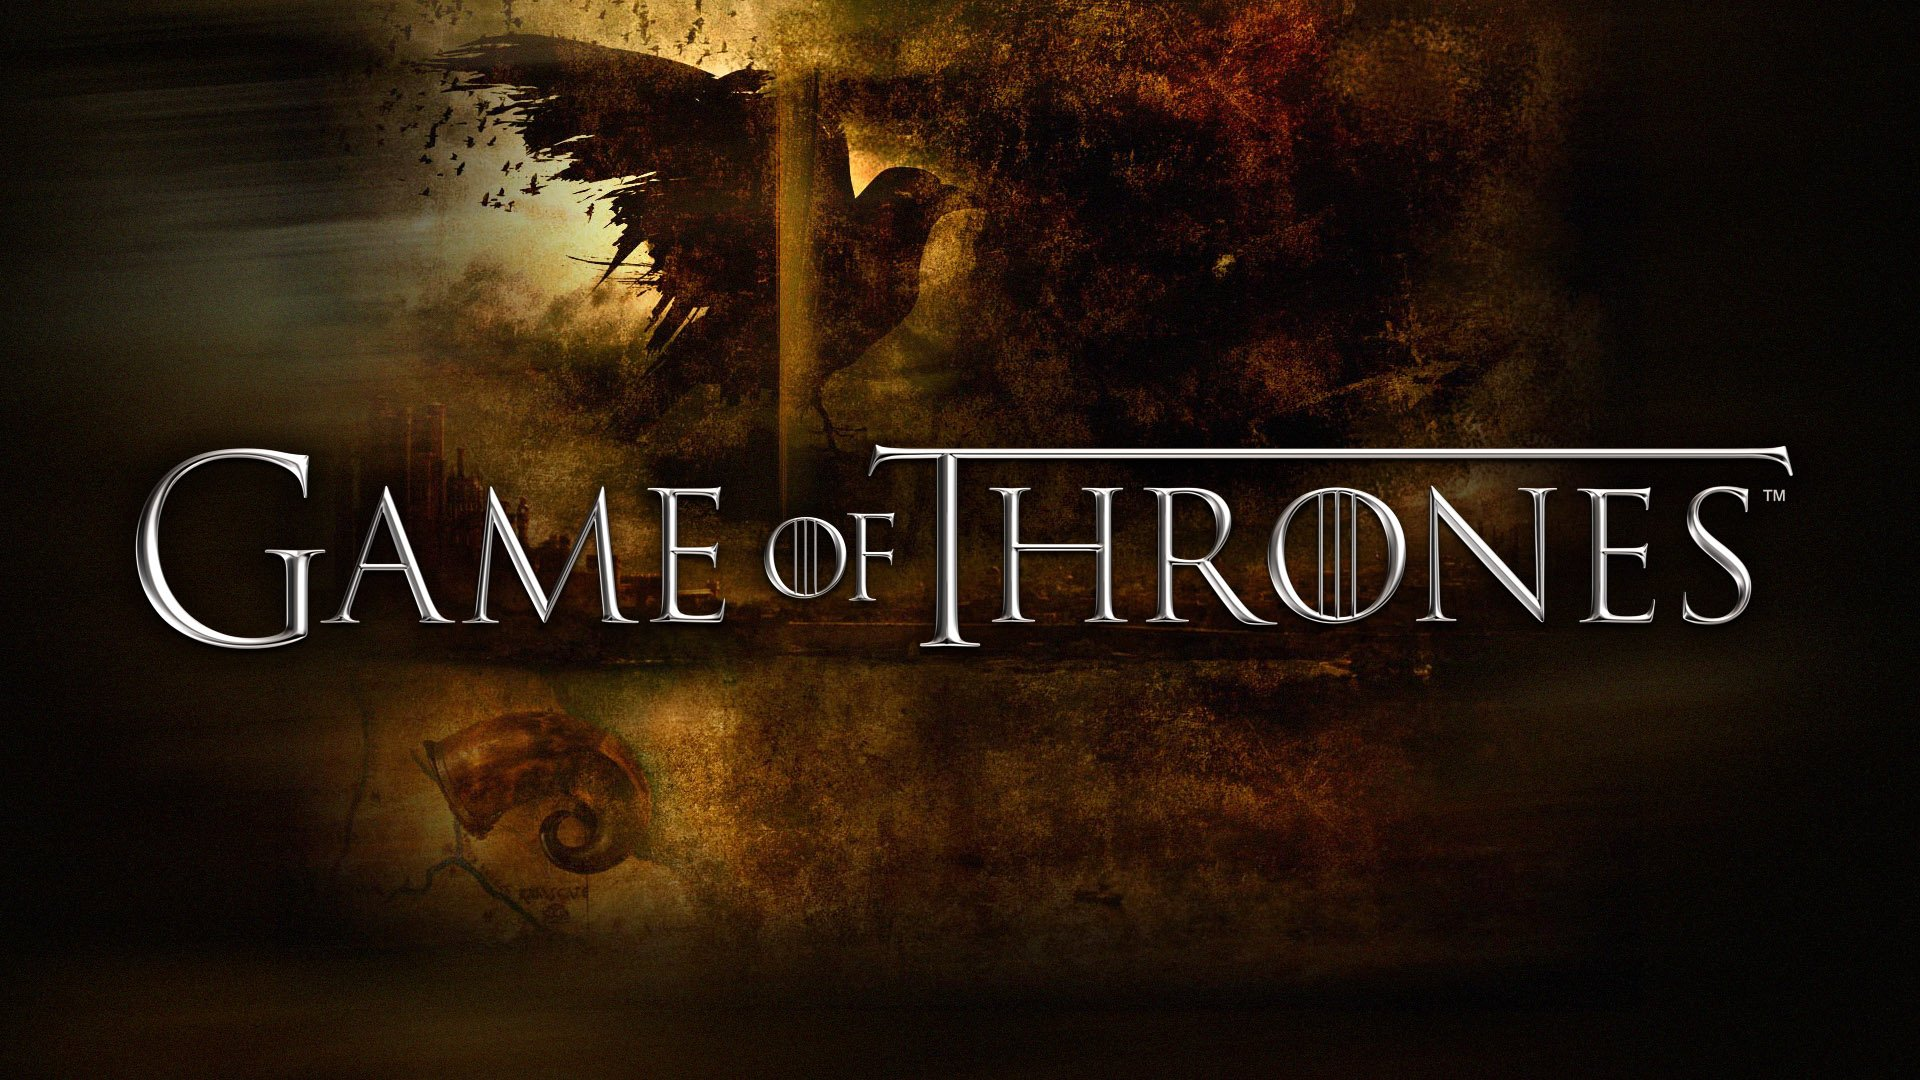 Game of Thrones Wallpapers hd 1920x1080